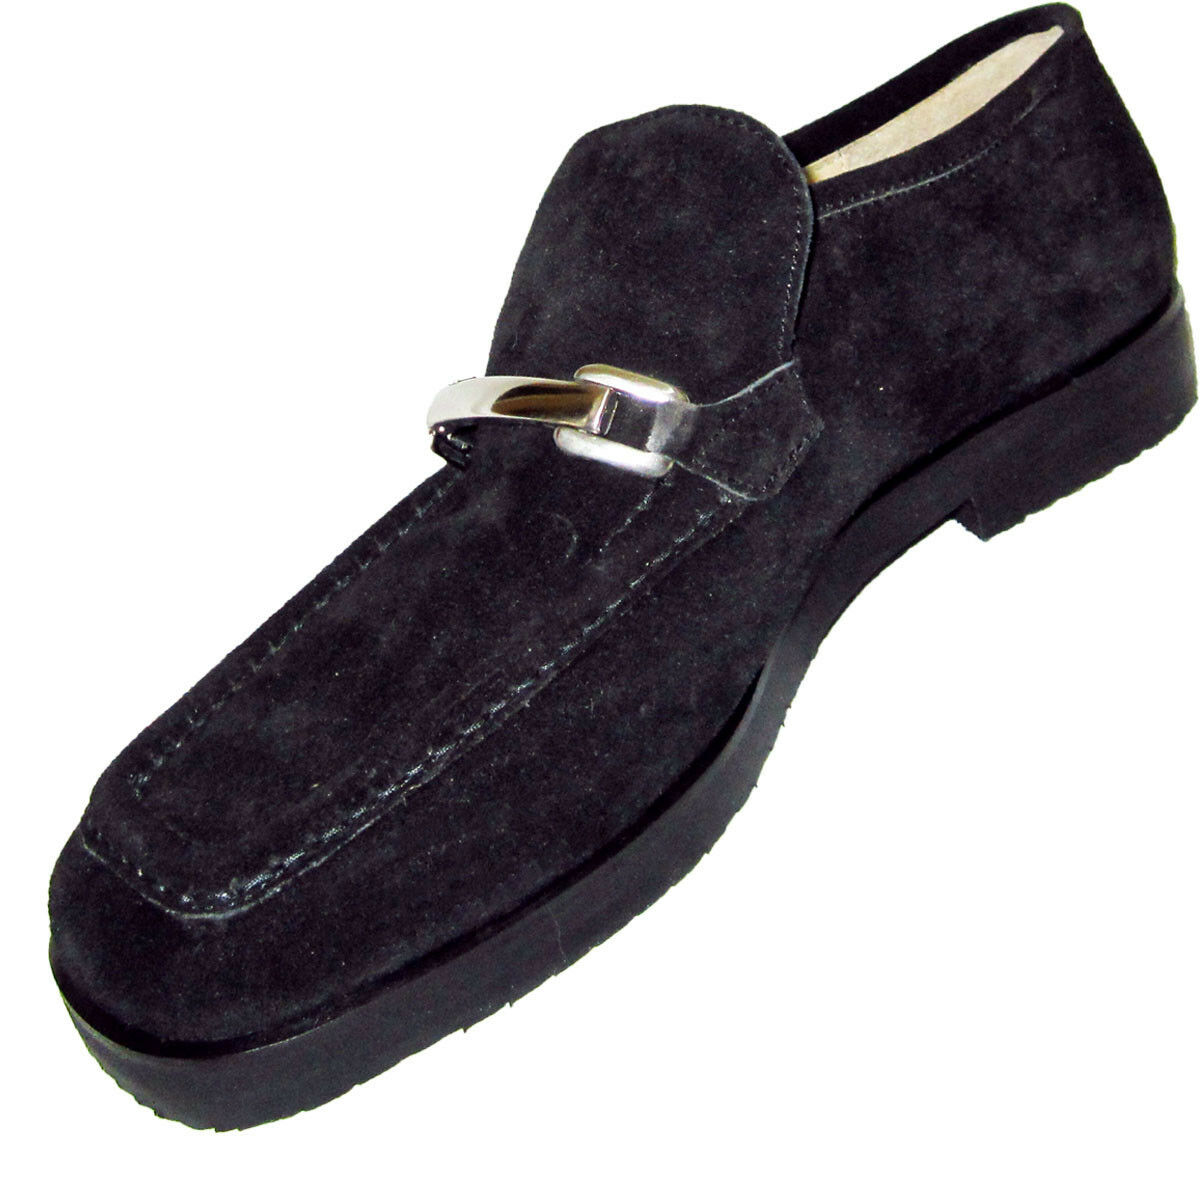 New FIERAMOSCA High-End Suede Loafers shoes CHROME Detail MADE in in in ITALY 7N 223ebc